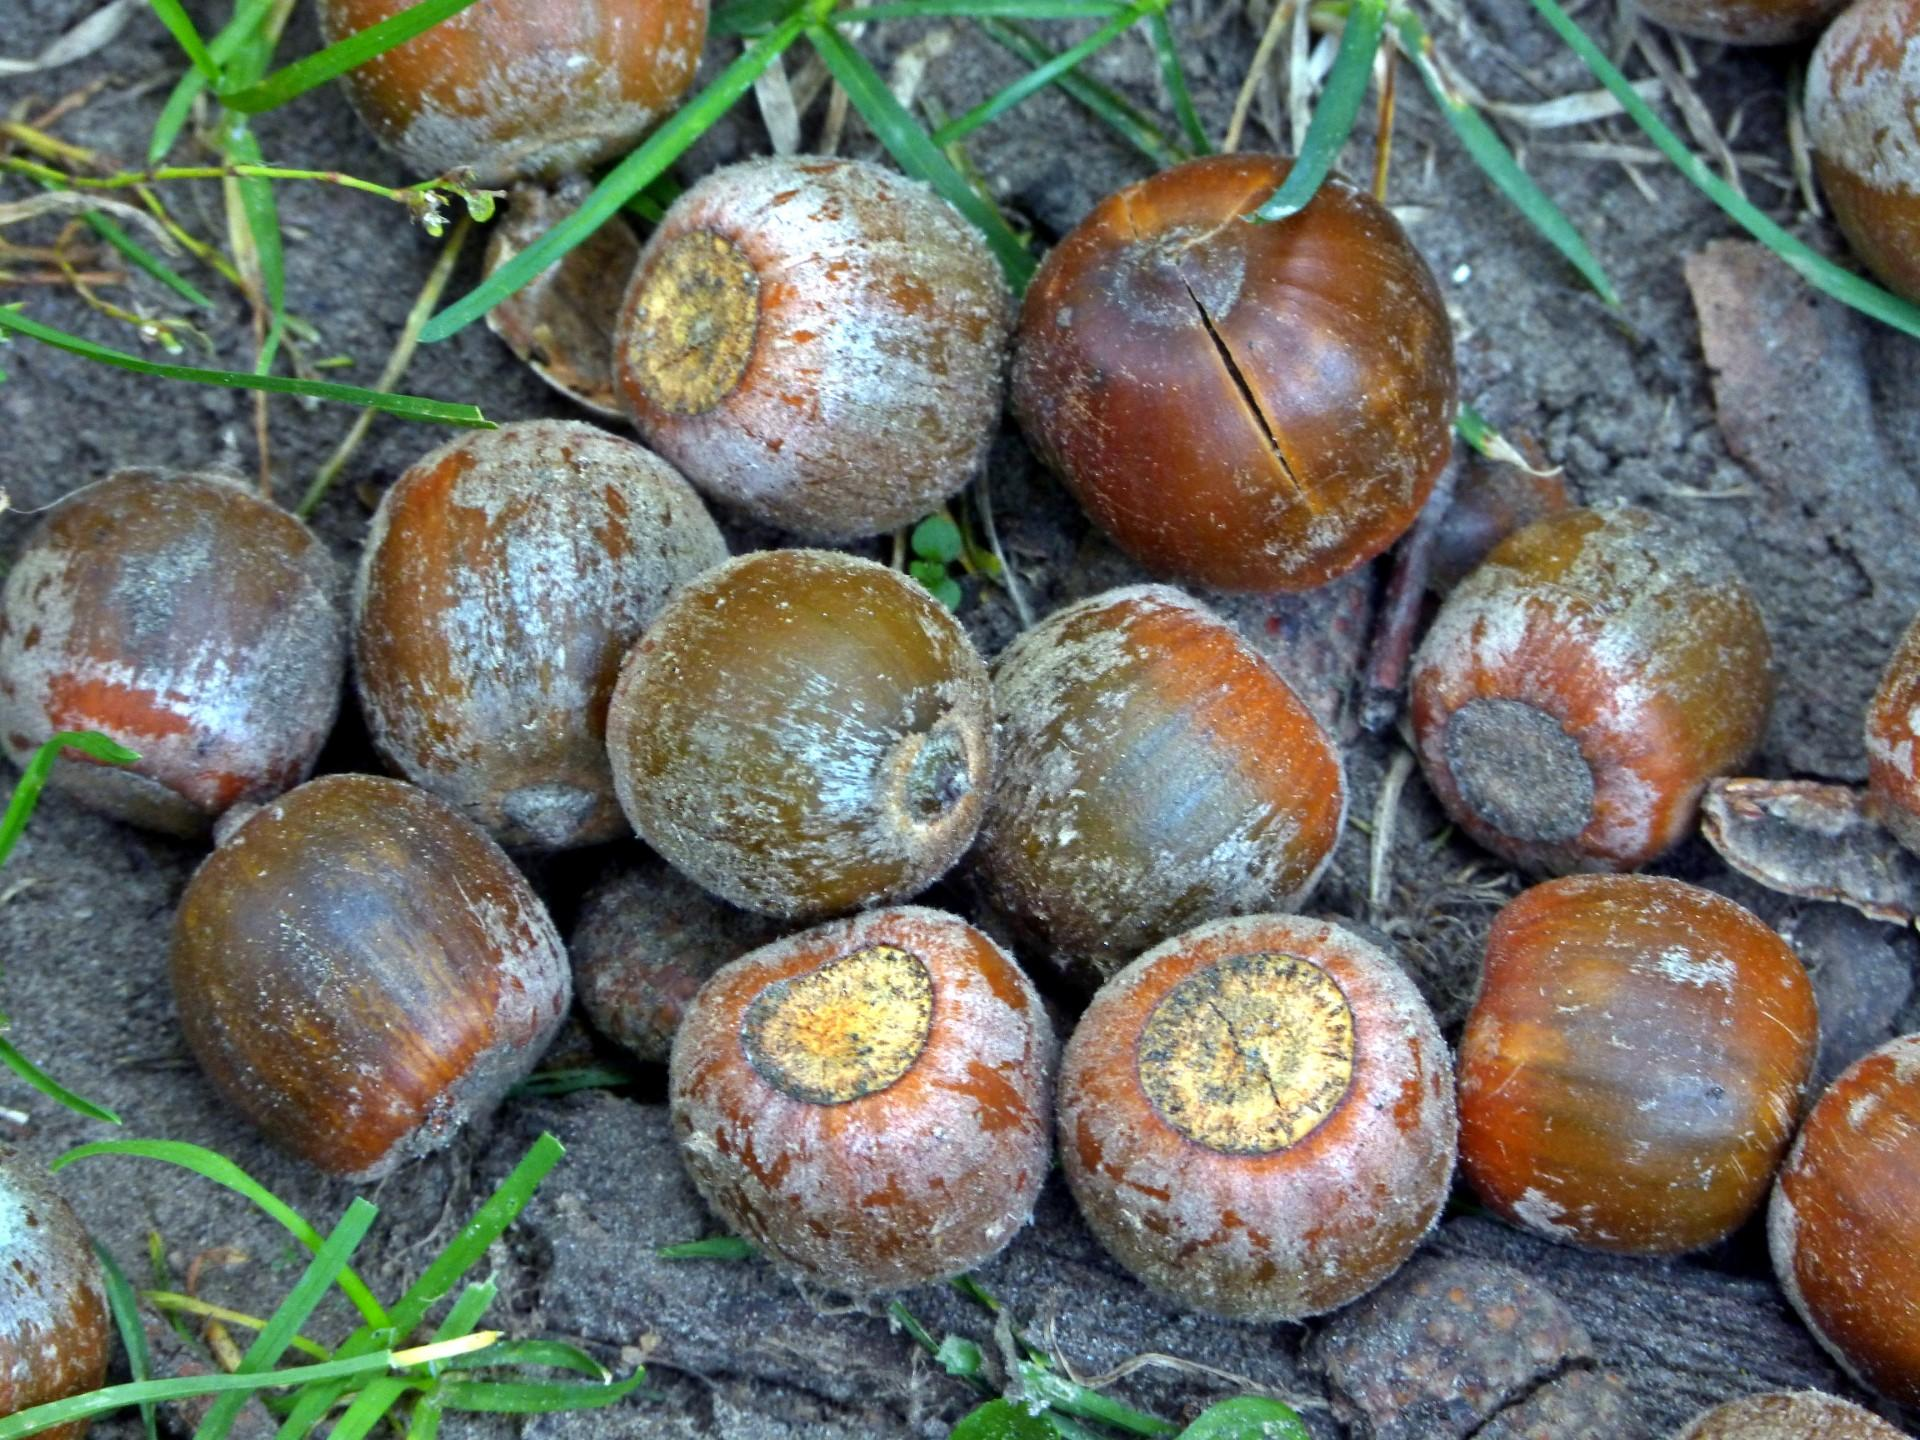 Acorns. Photo: Karen Yukich